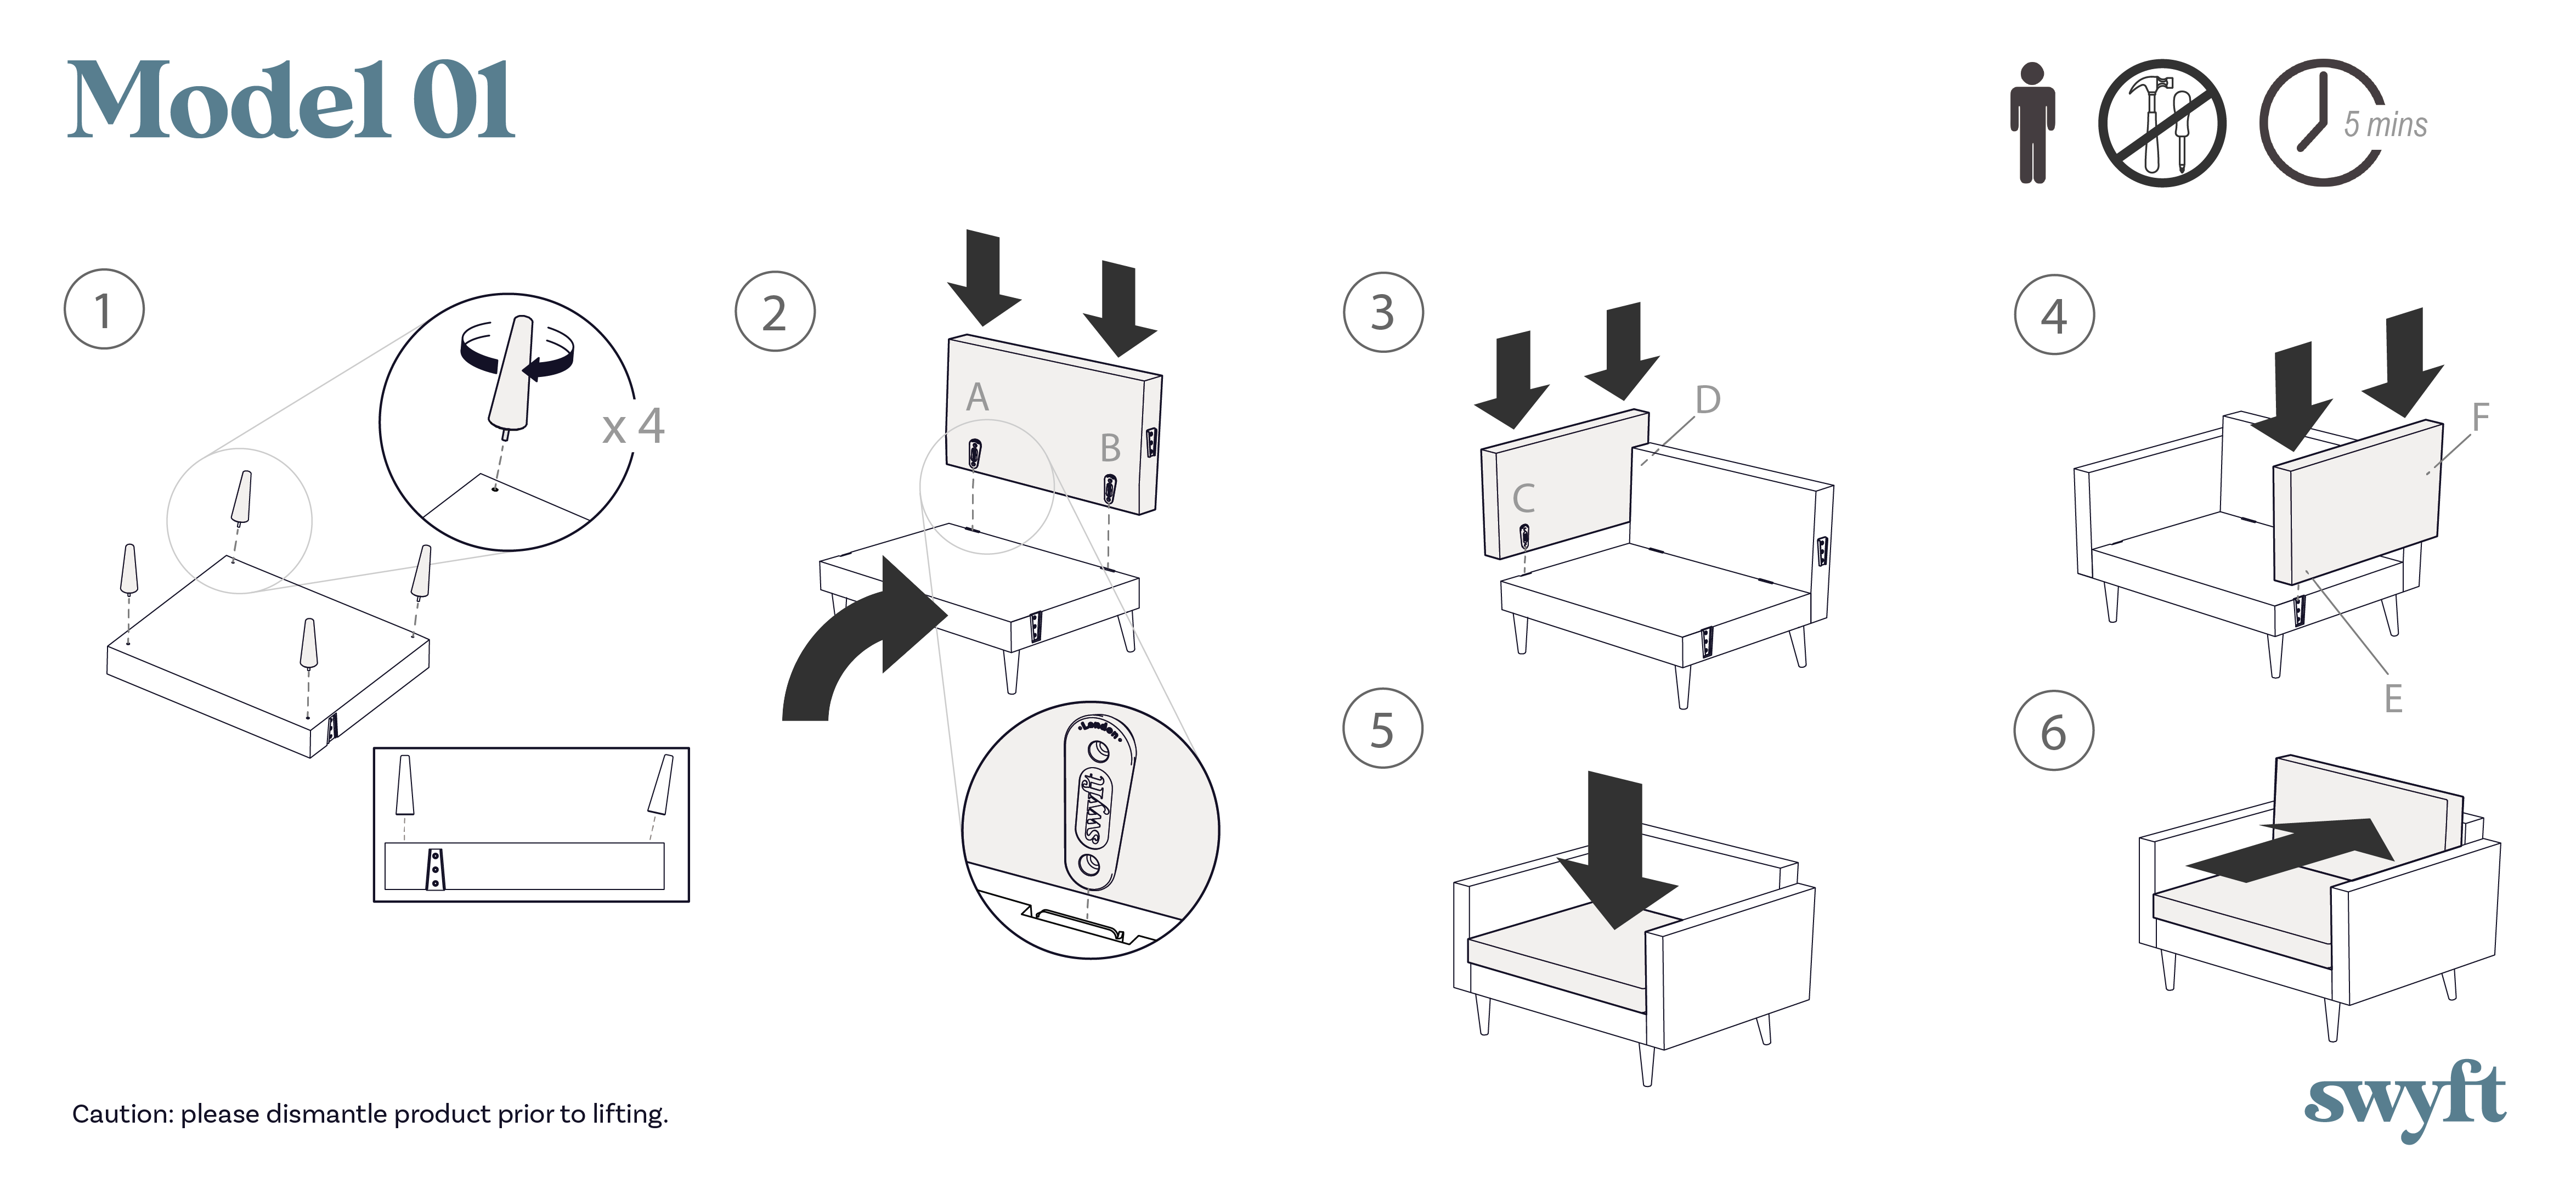 Model 01 Armchair assembly instruction drawings